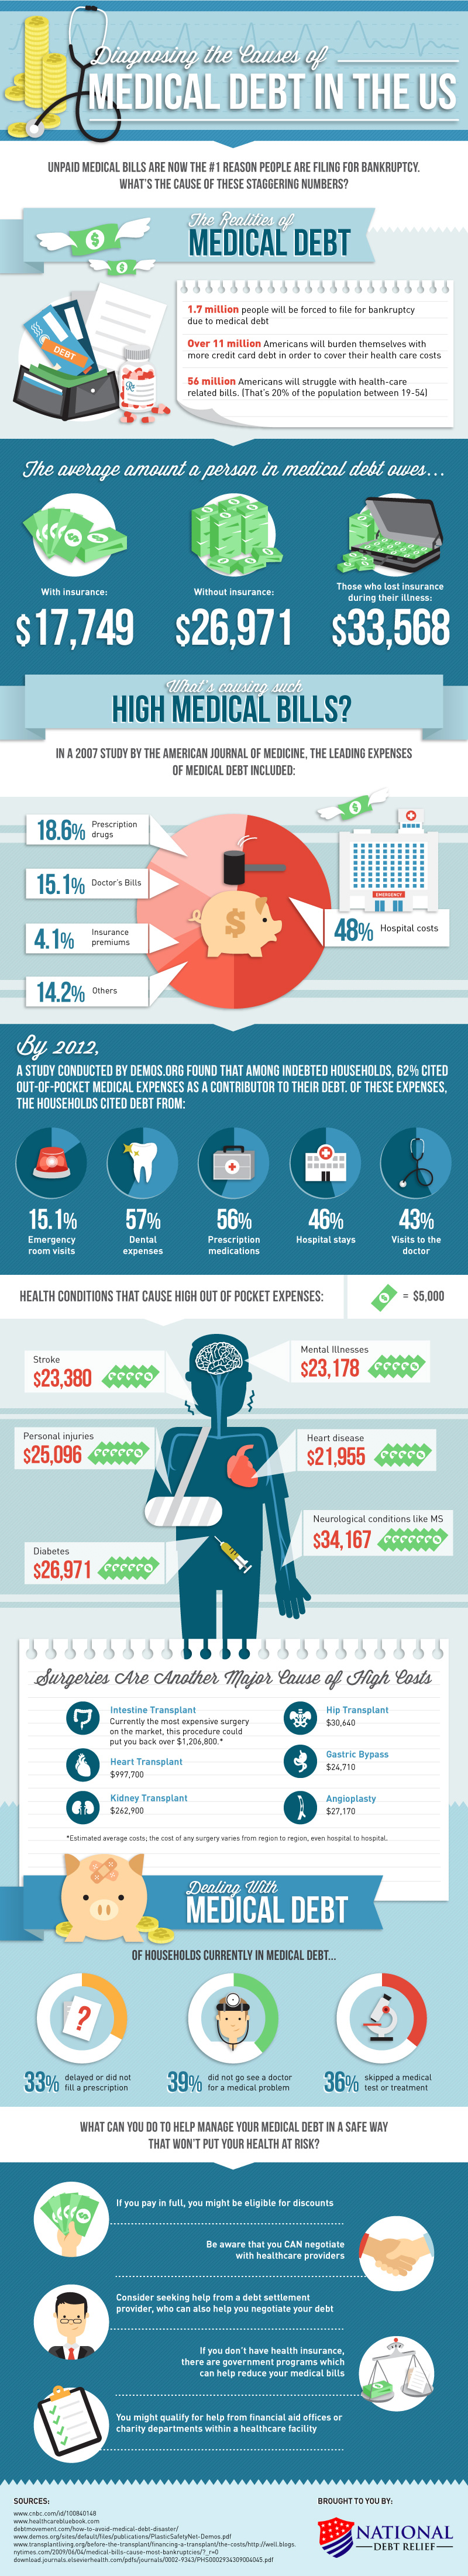 Medical Debt in the US Infographic